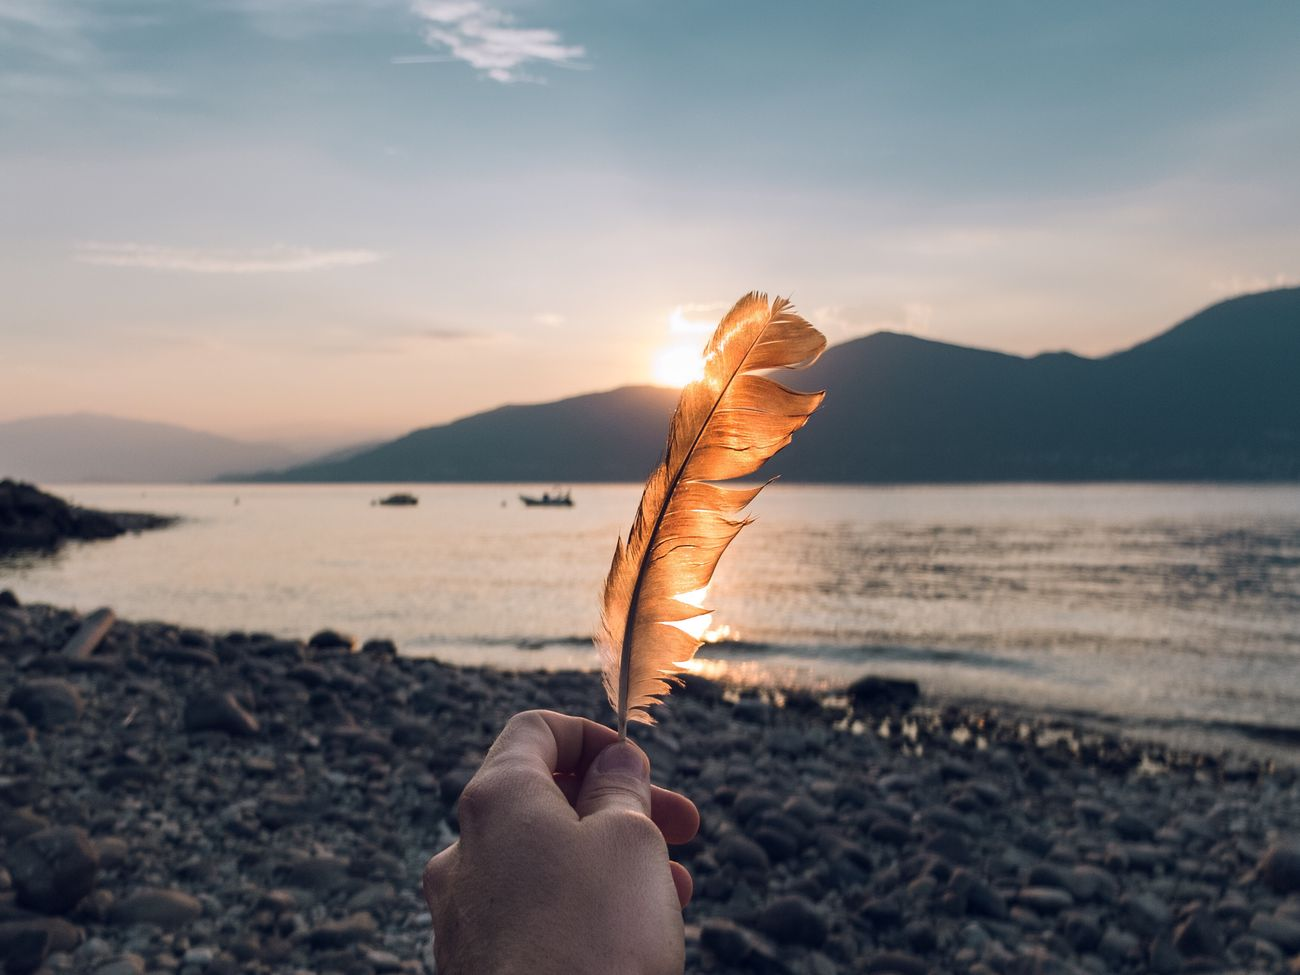 Close-up of person holding feather on beach